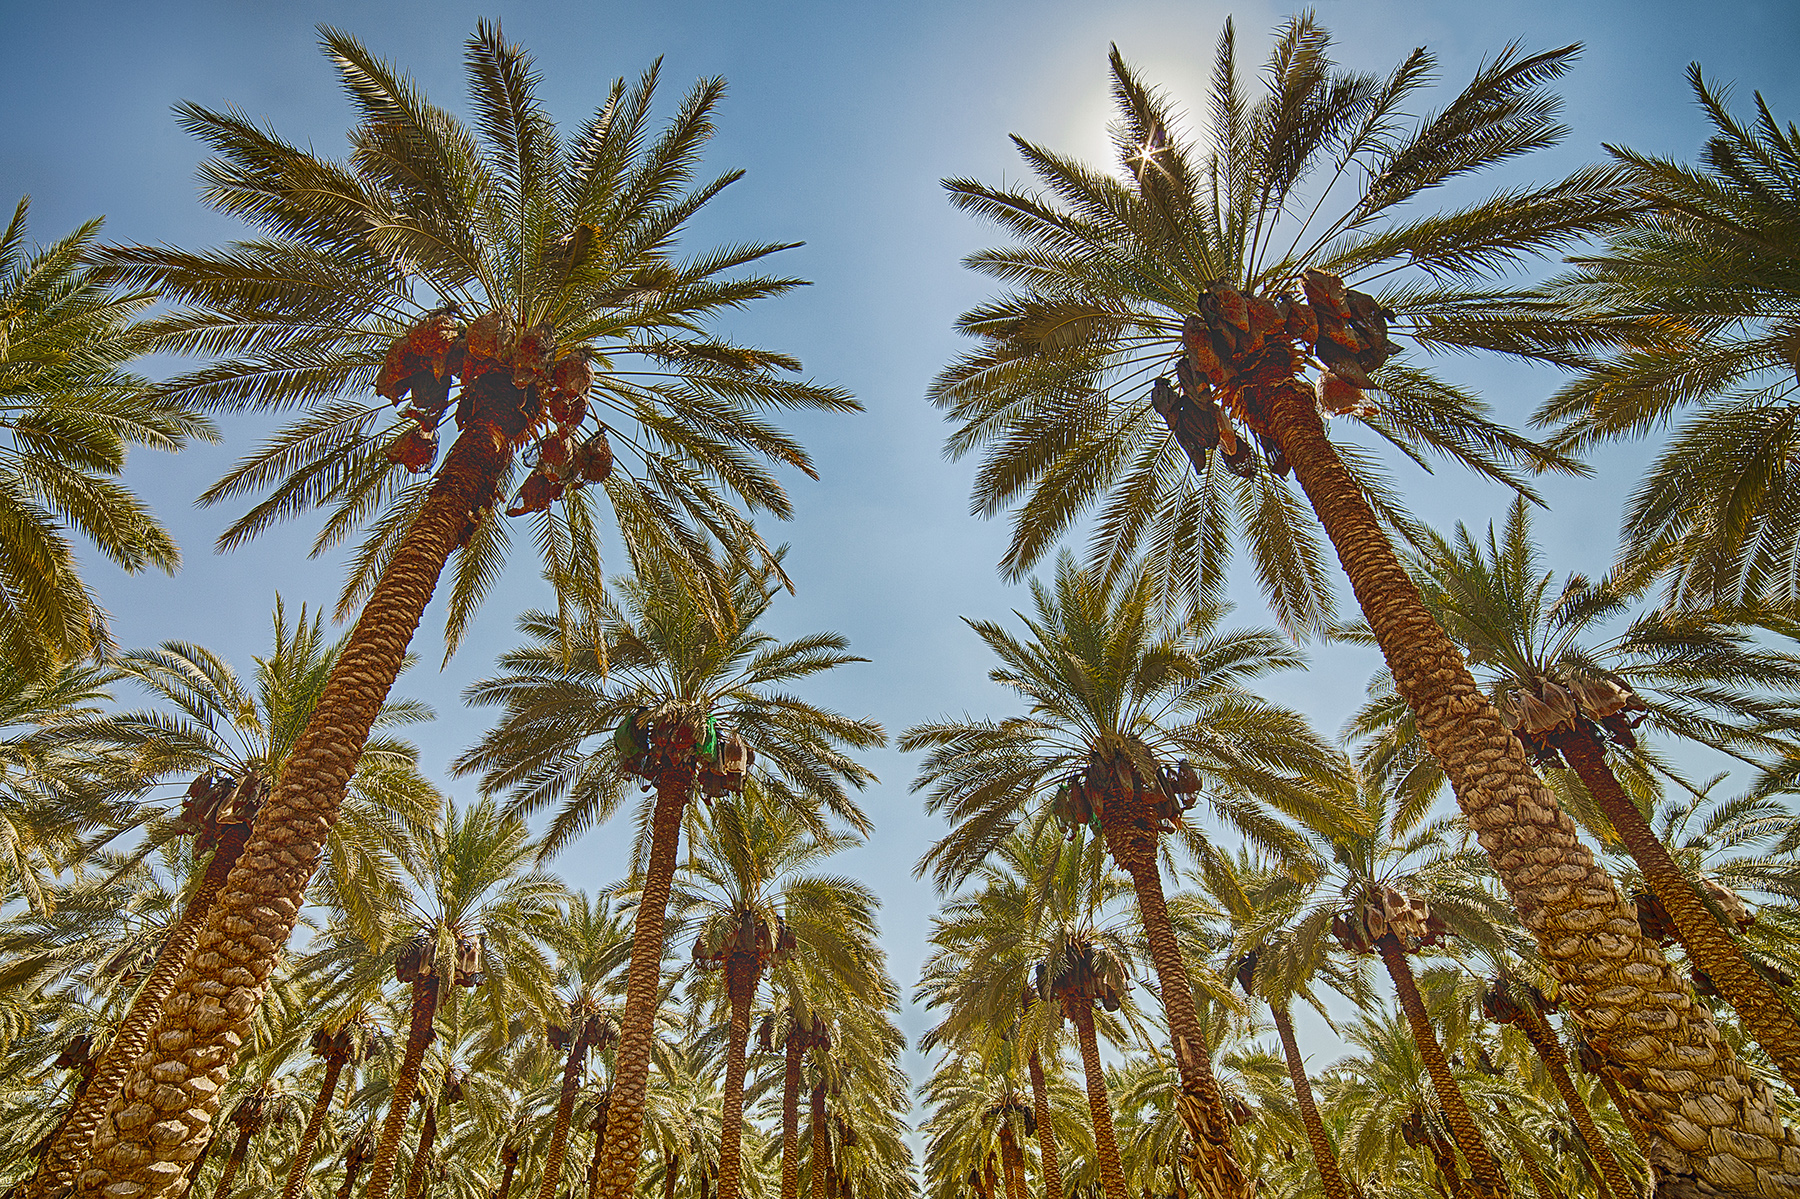 The Palms of Palestine 2014